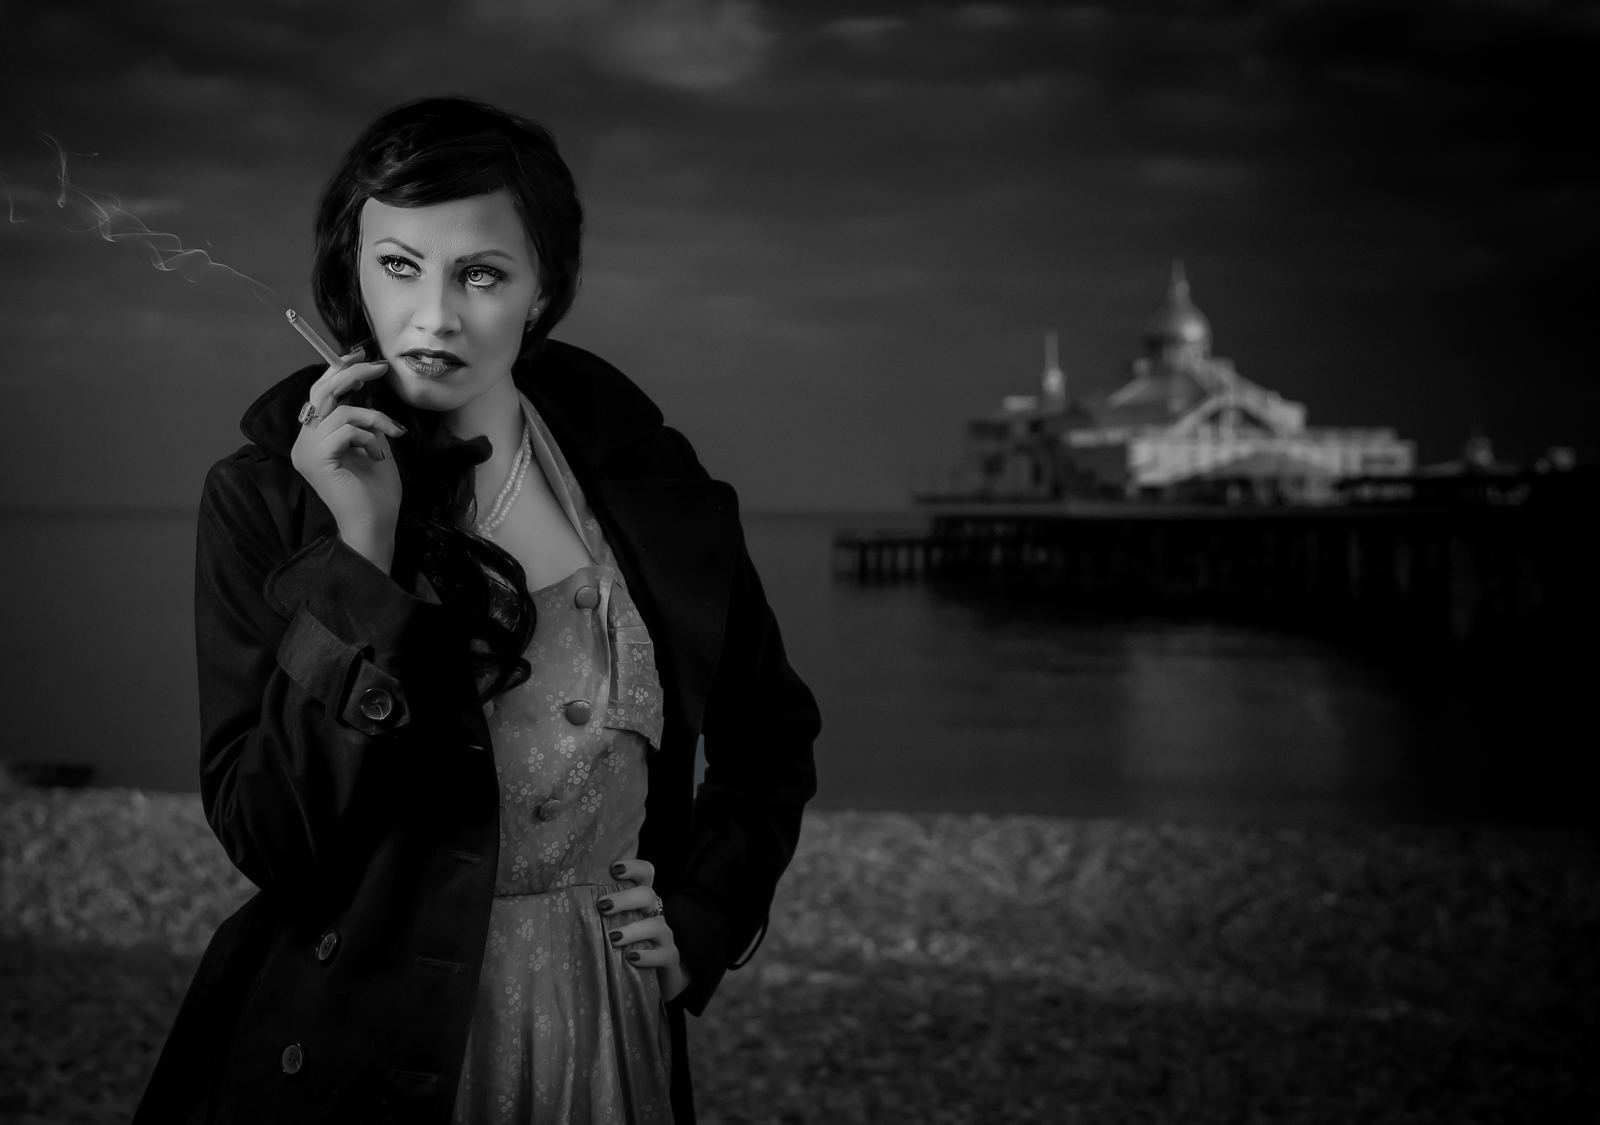 Film Noir Waiting by the Pier